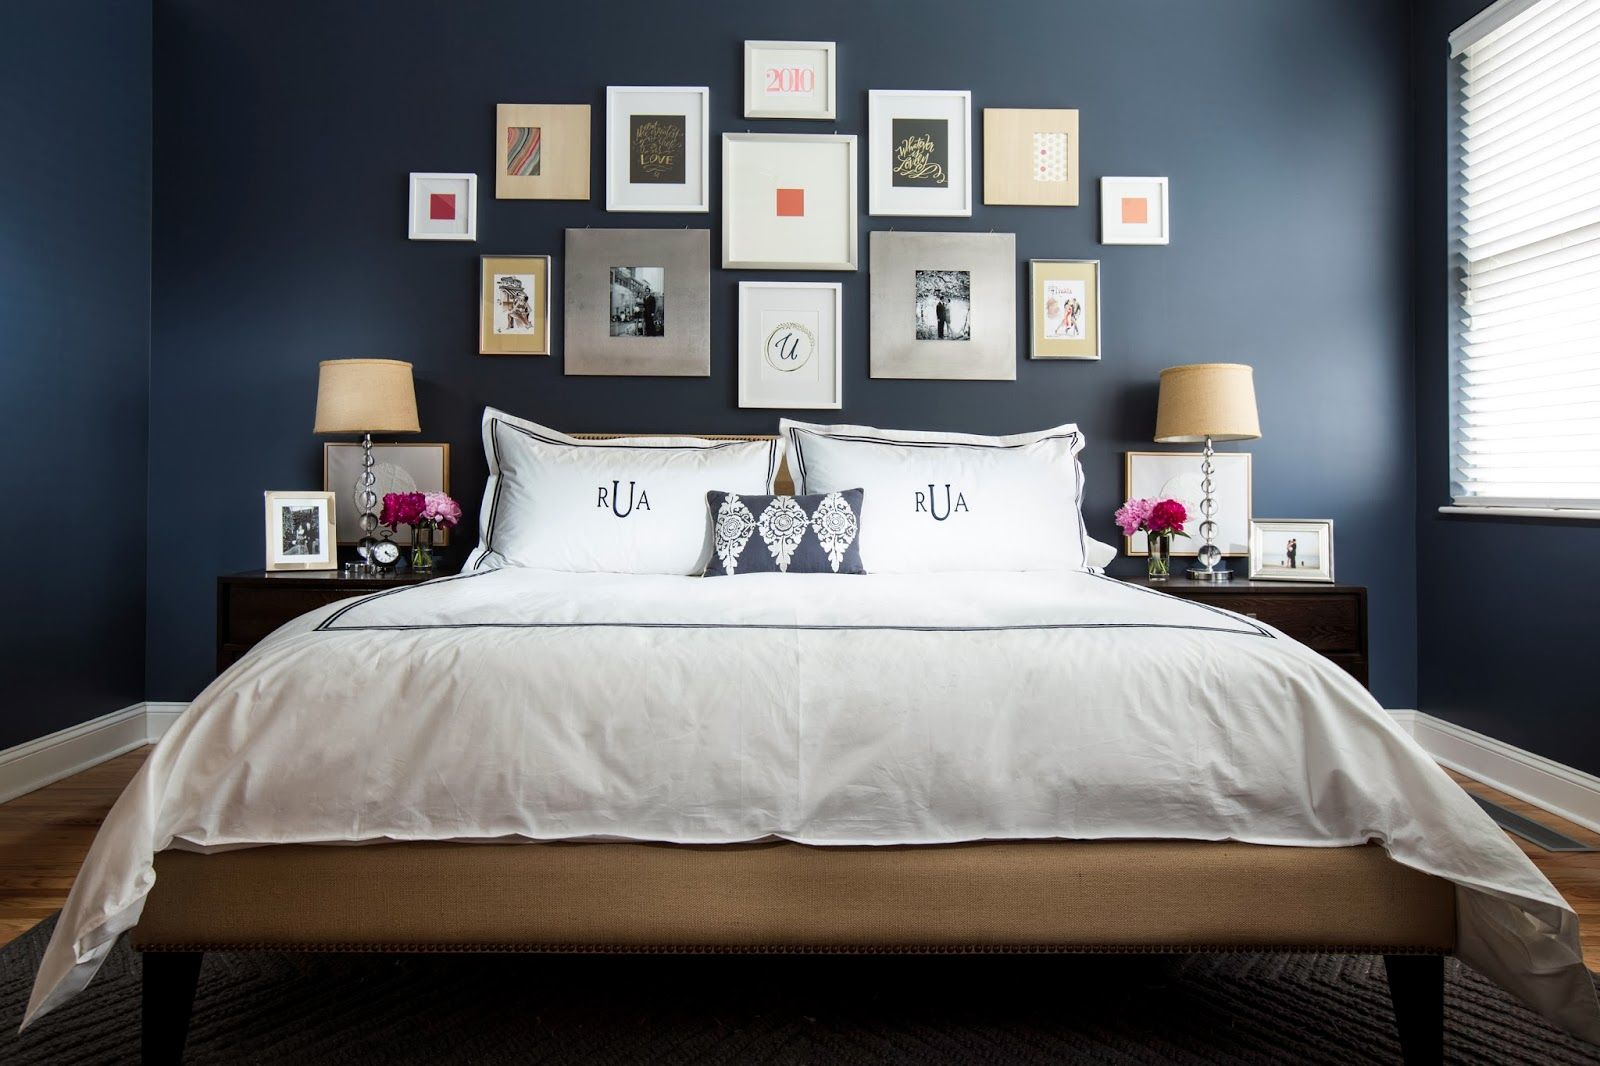 Amazing Dark Blue Bedroom Design Decor Ideas With Photo Frame Decoration